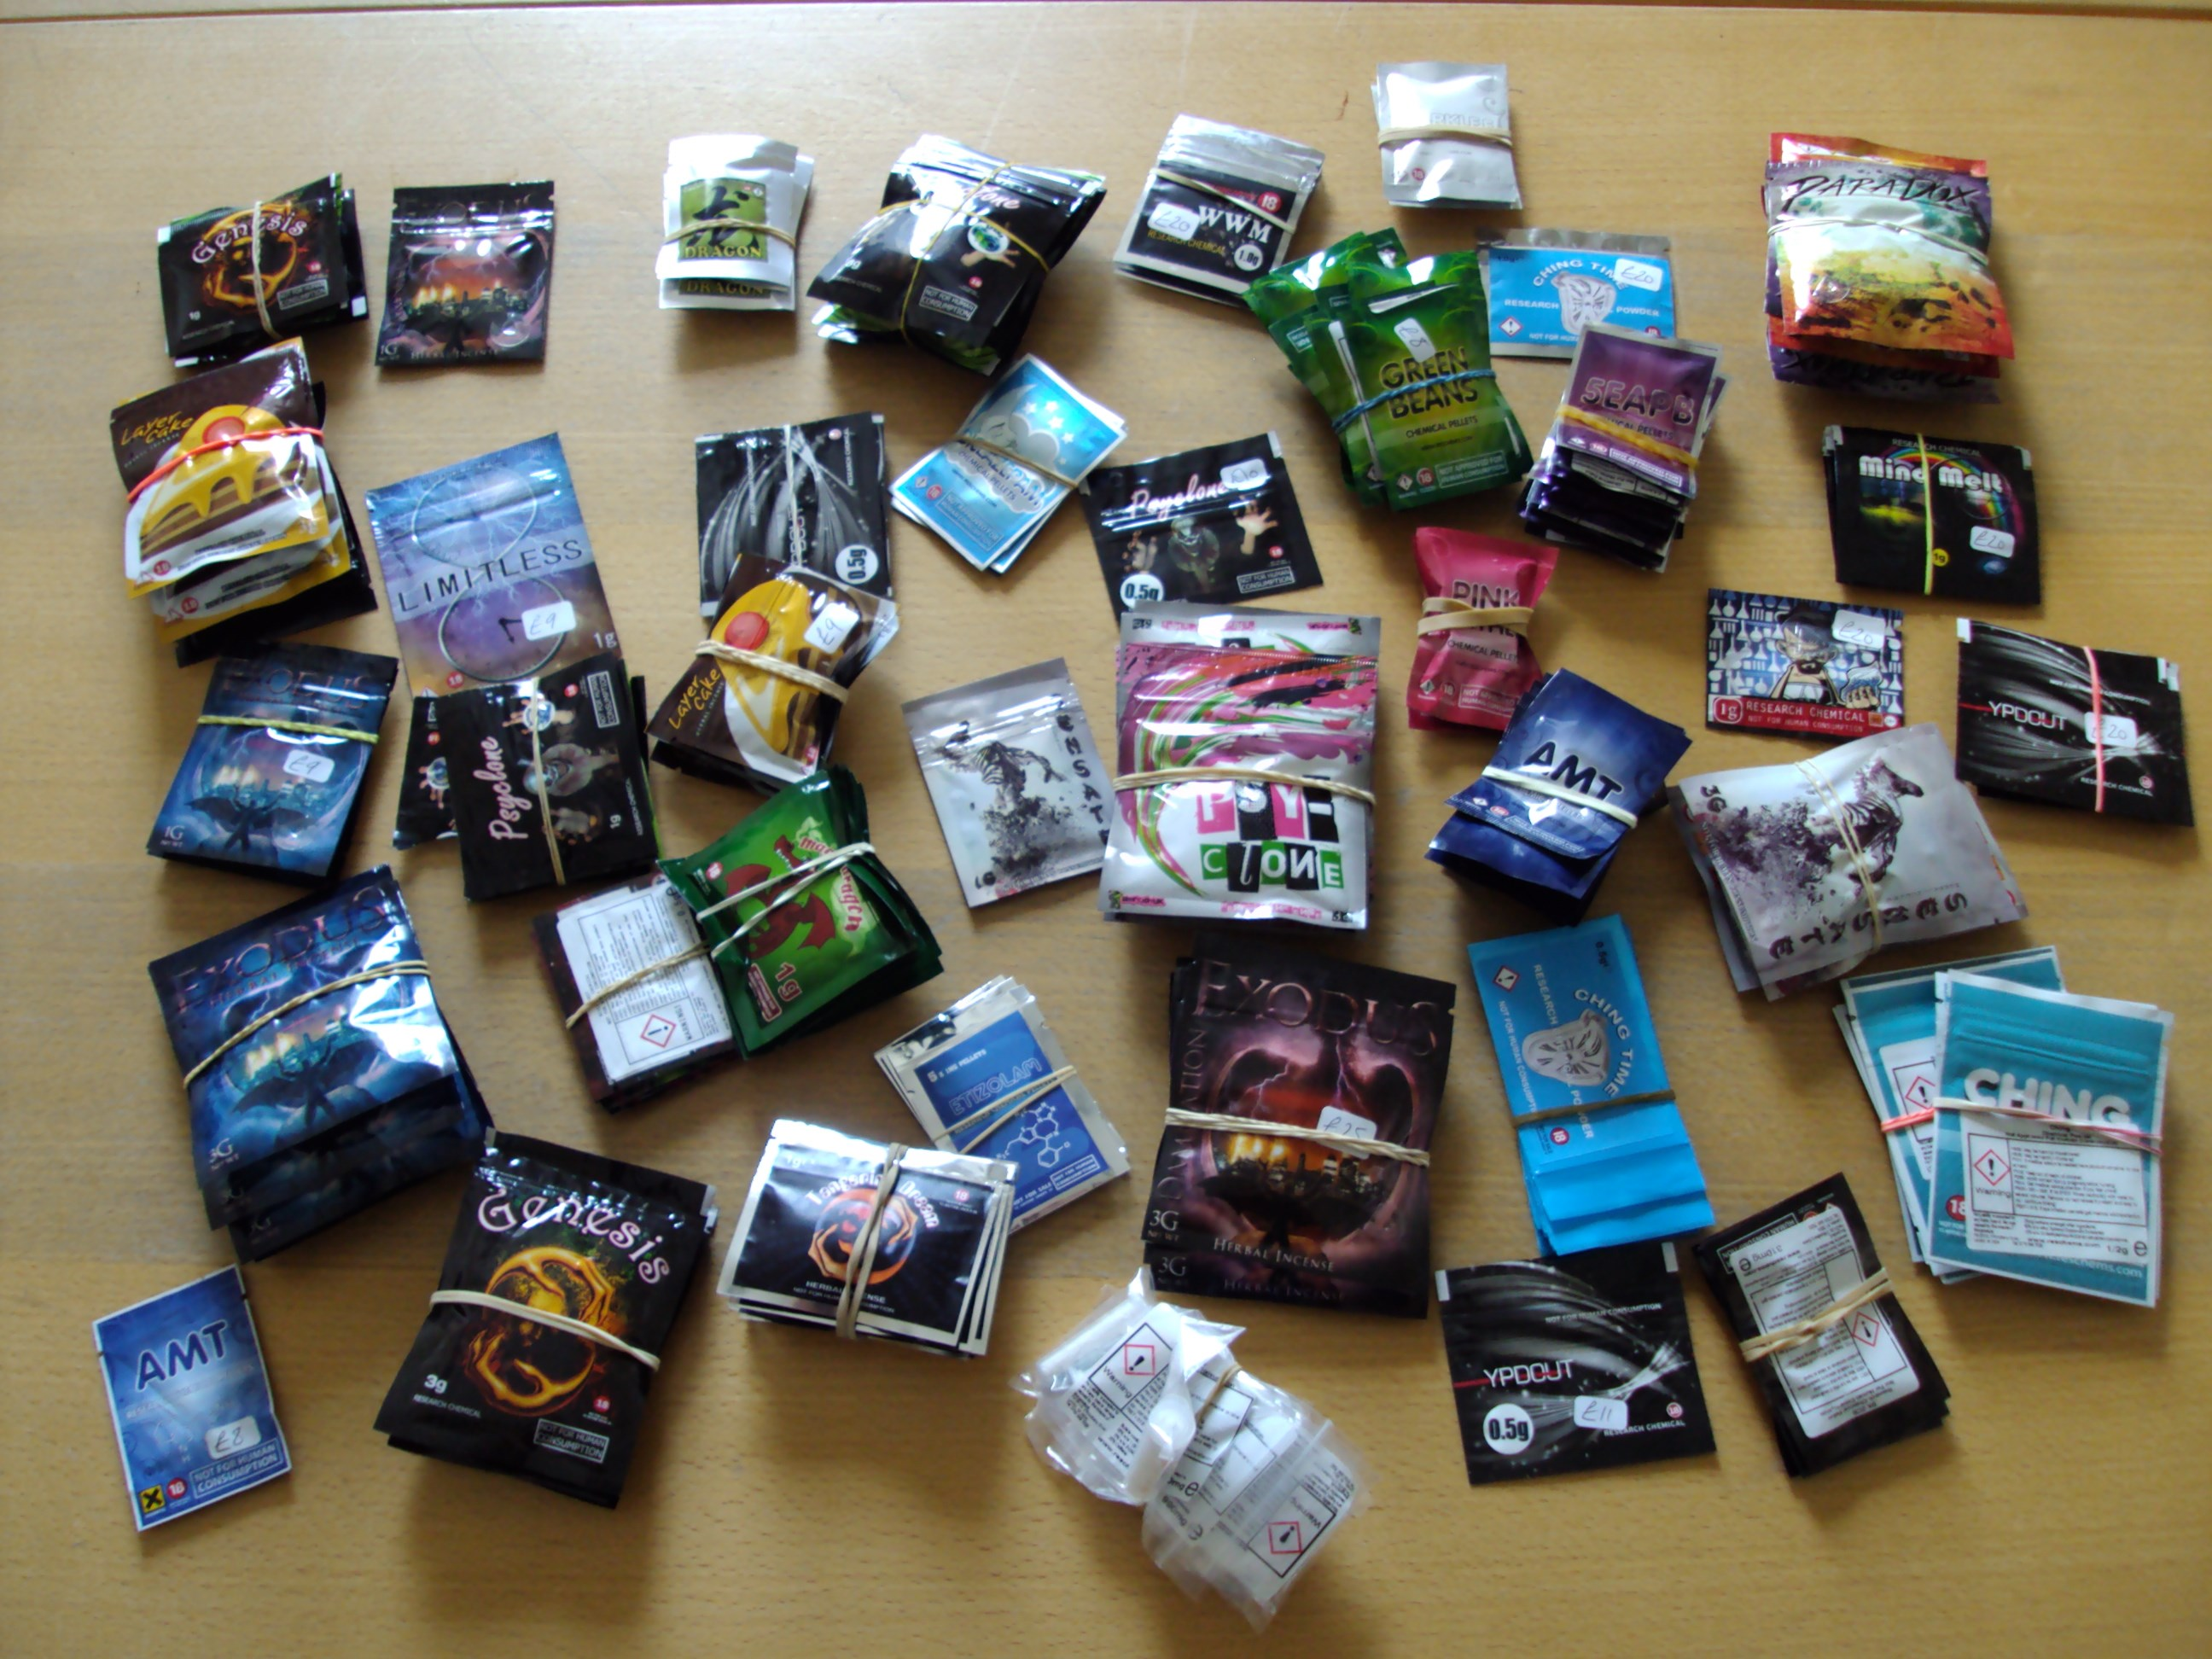 Notts partners prepare for legislation on psychoactive substances